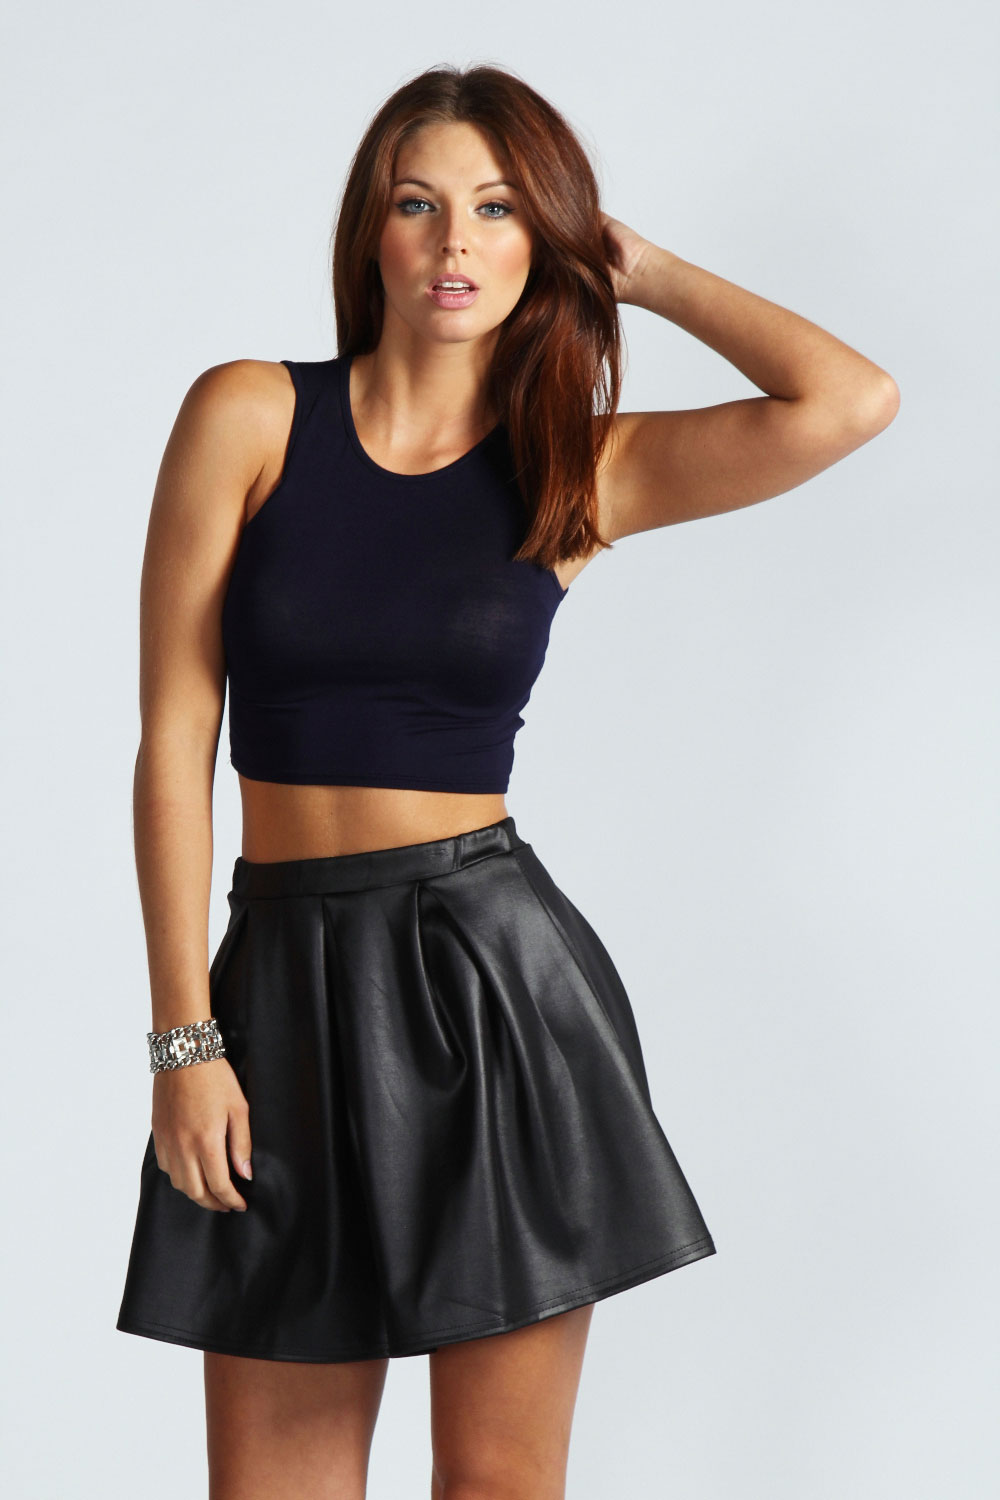 Boohoo-Zara-Sleeveless-Slash-Neck-Crop-Top